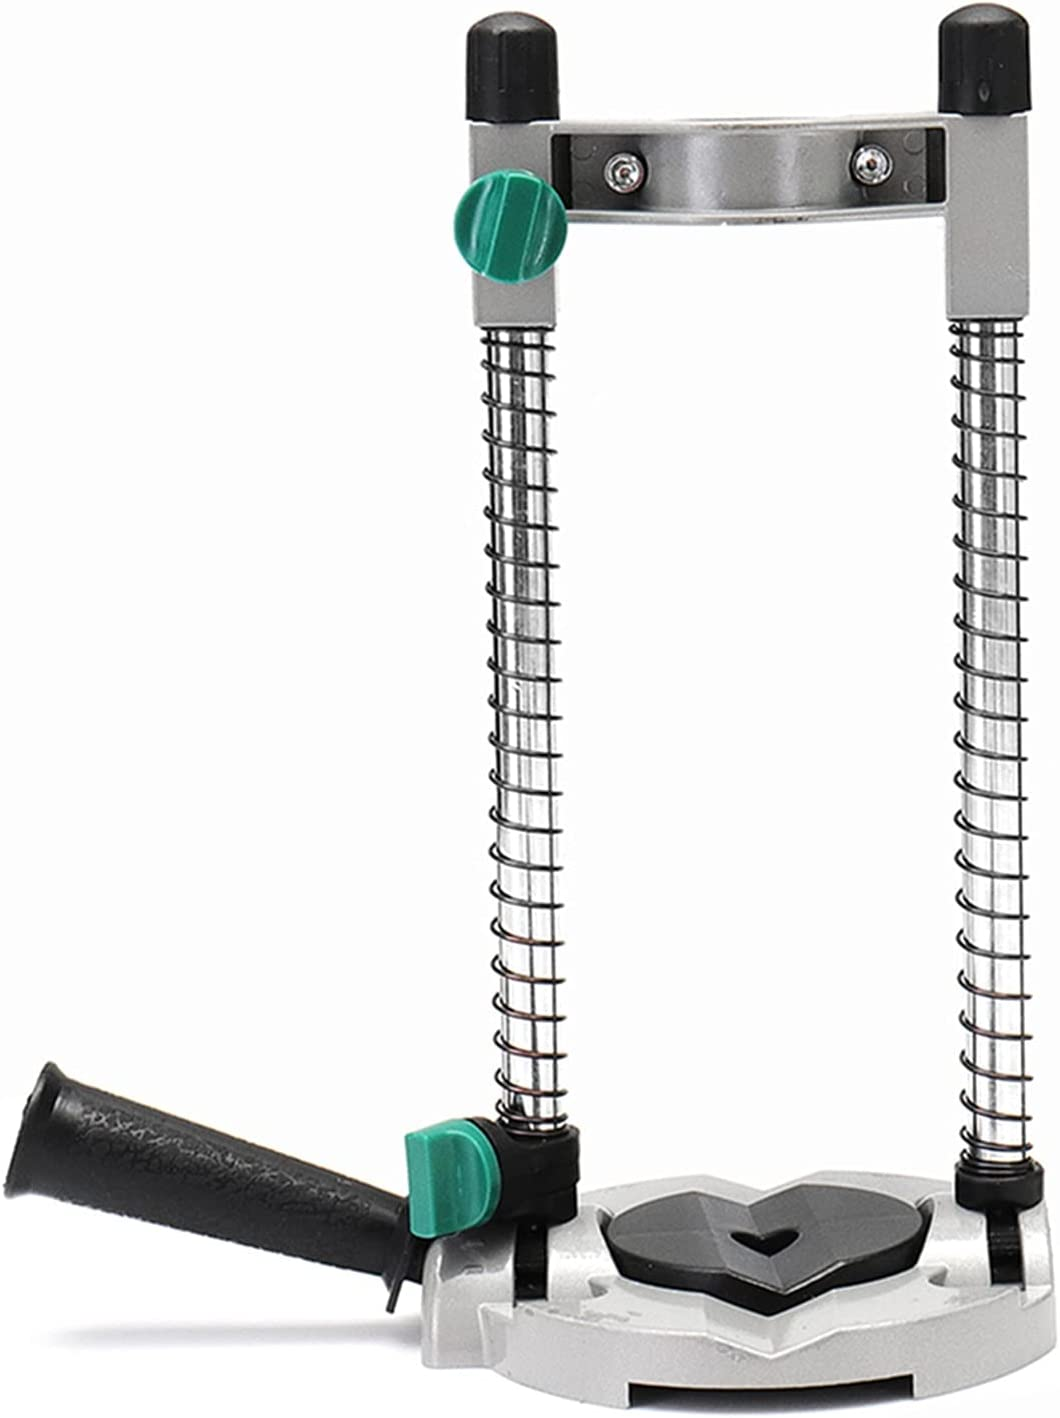 Drill Frame Max 55% OFF Guide Adjustable And Tool Br Max 52% OFF Detachable Angle